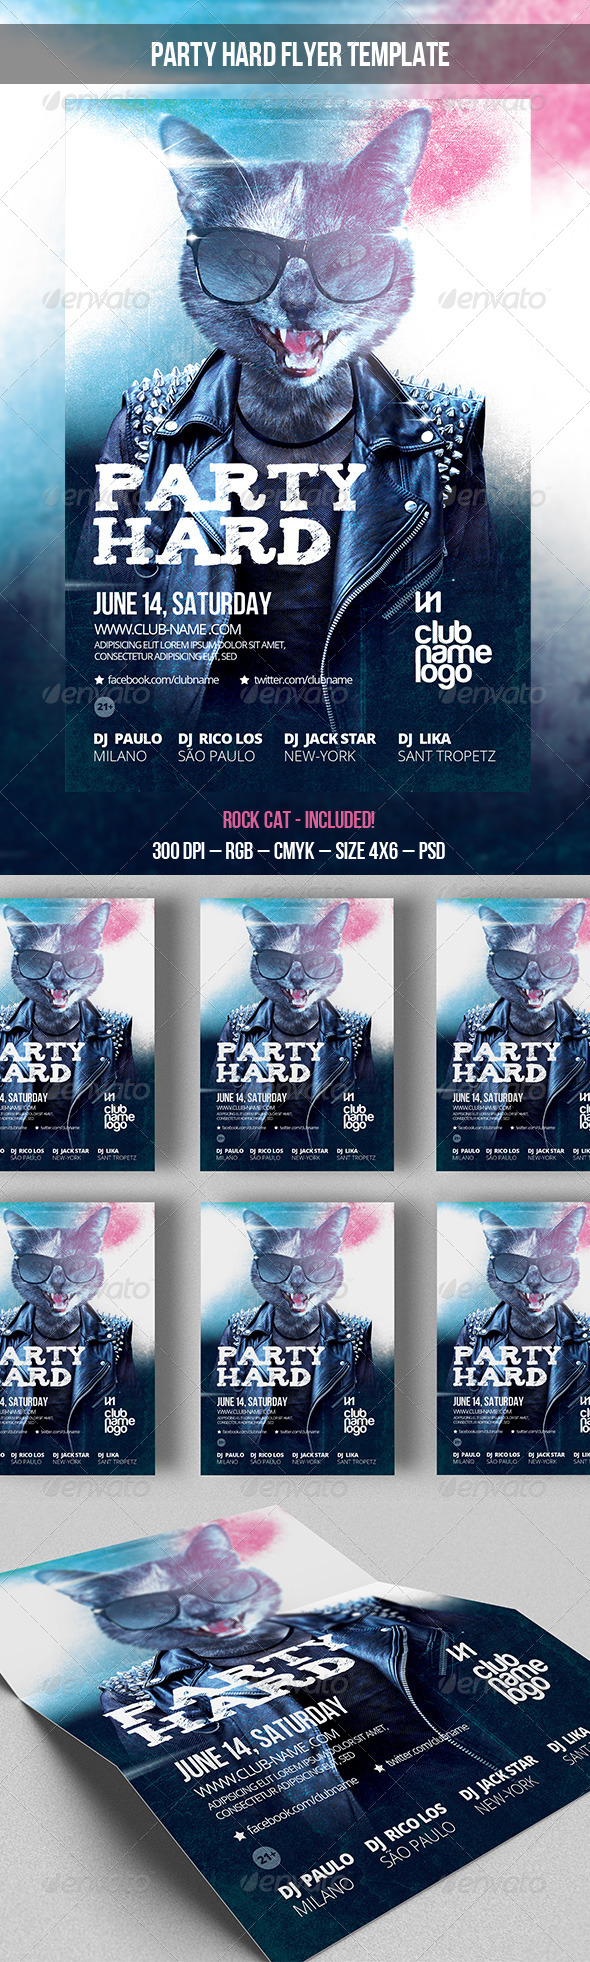 GraphicRiver Party Hard Flyer Template 7772318